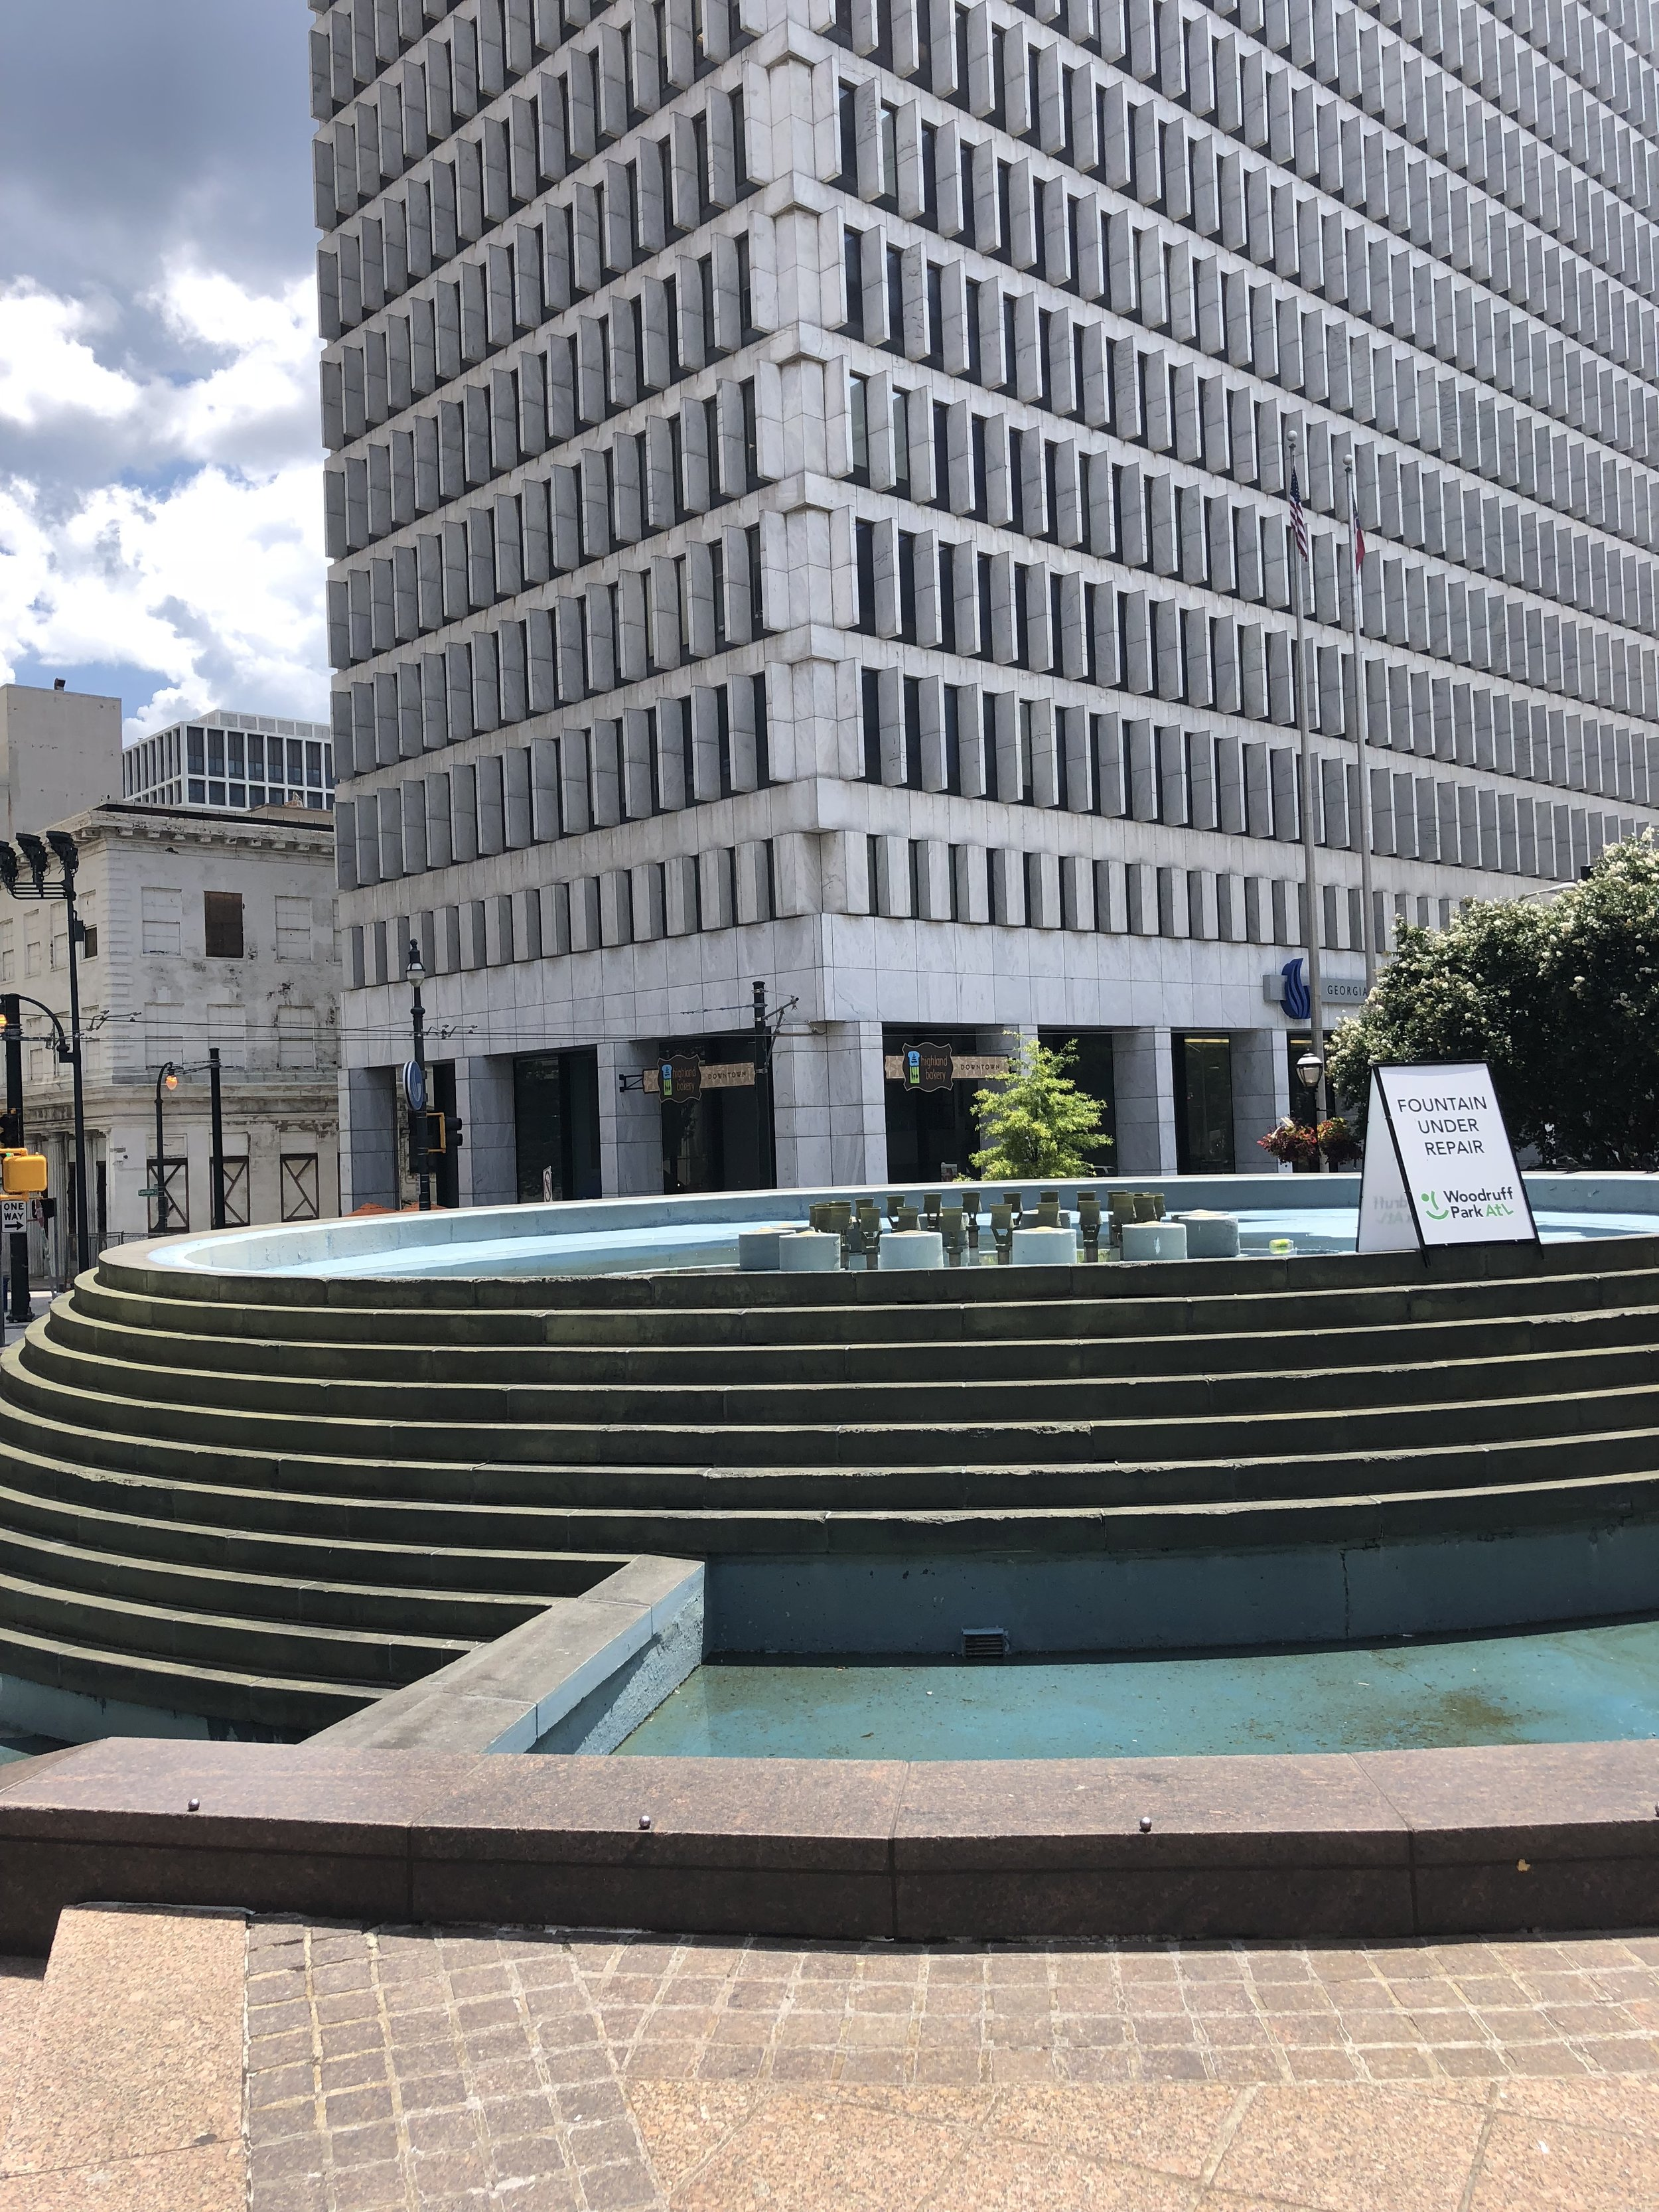 The Woodruff Park fountain, currently being repaired.